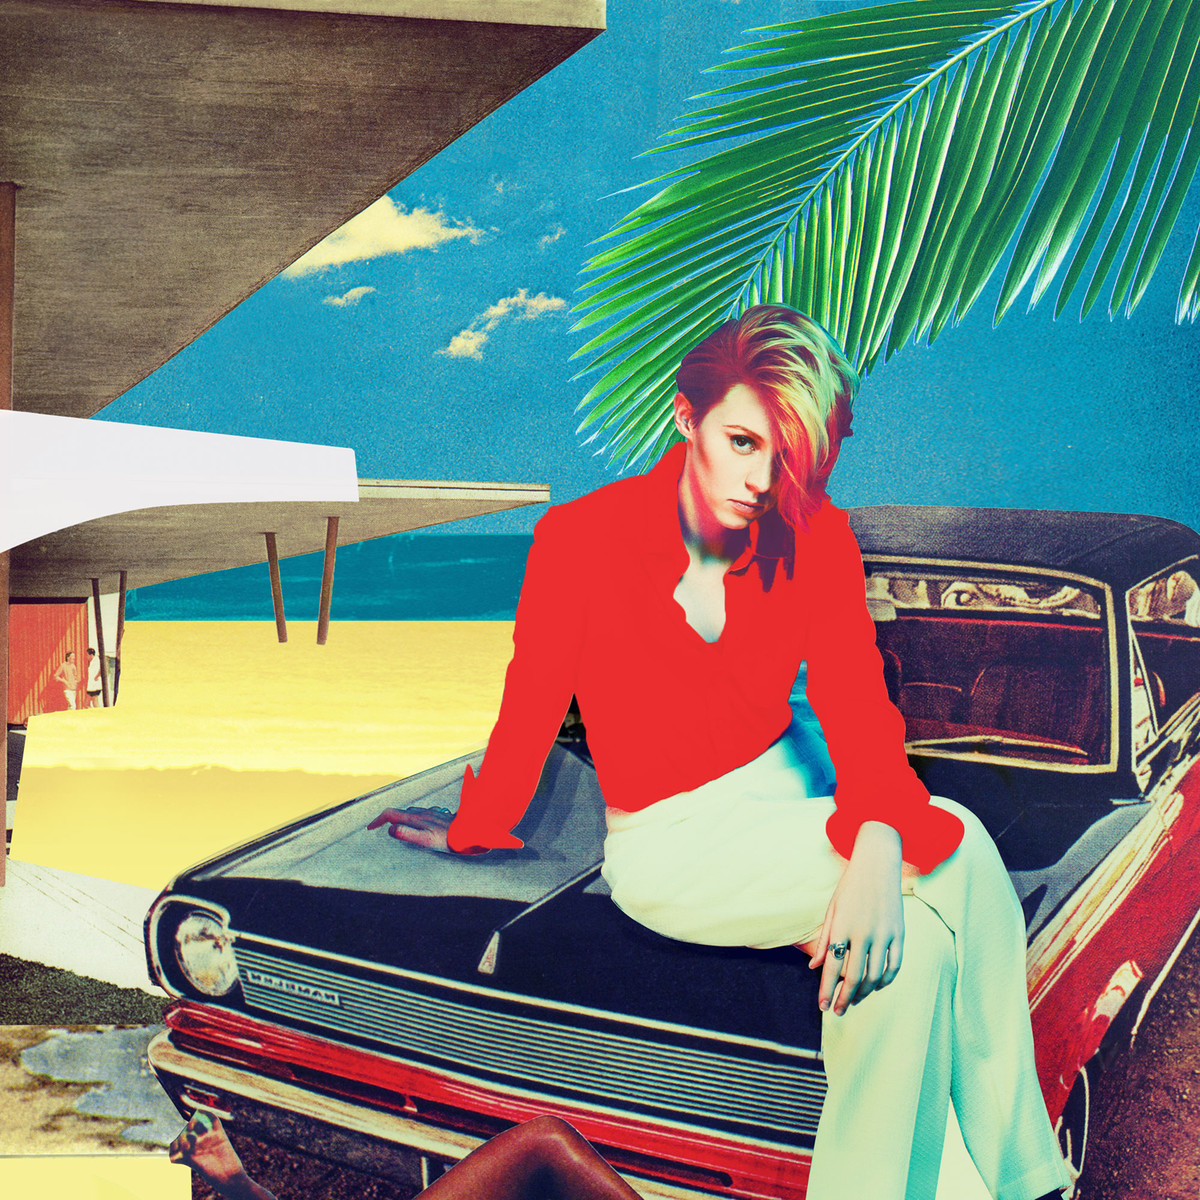 La Roux - Trouble in Paradise Artwork